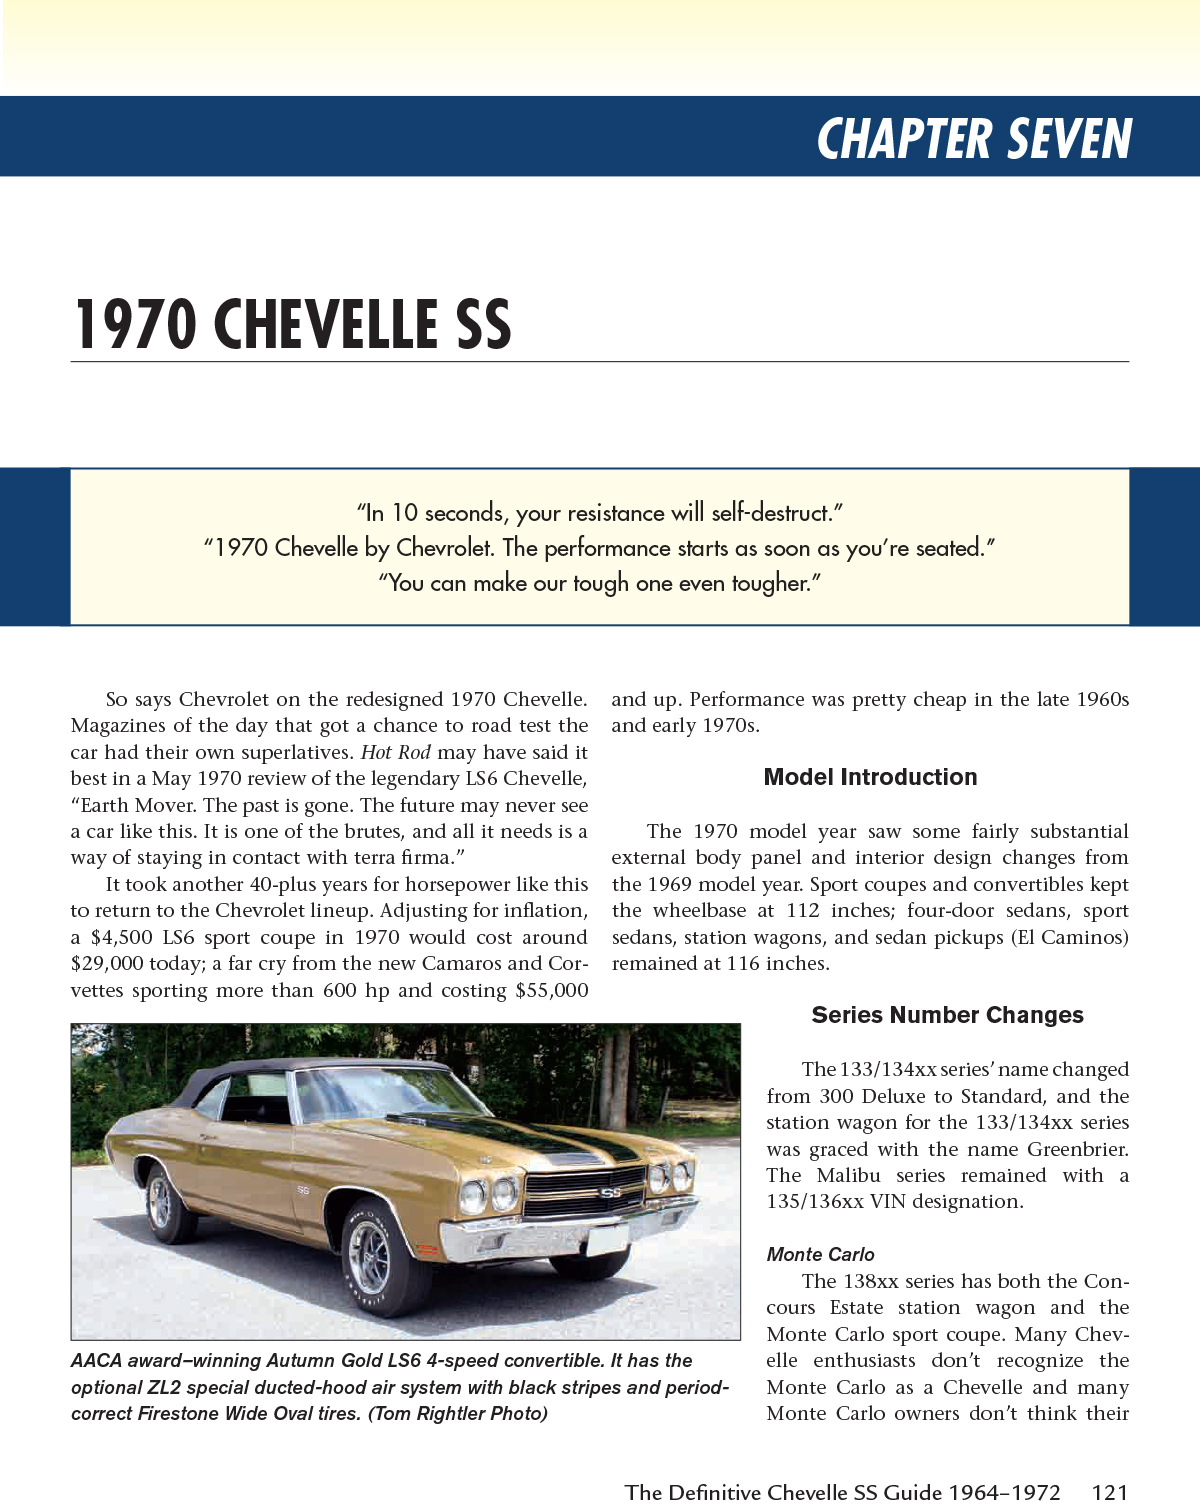 Chevelle El Camino Ss Definitive Guide Book Mcintosh 1964 1972 70 Monte Carlo Gold Sentinel Reference Manual